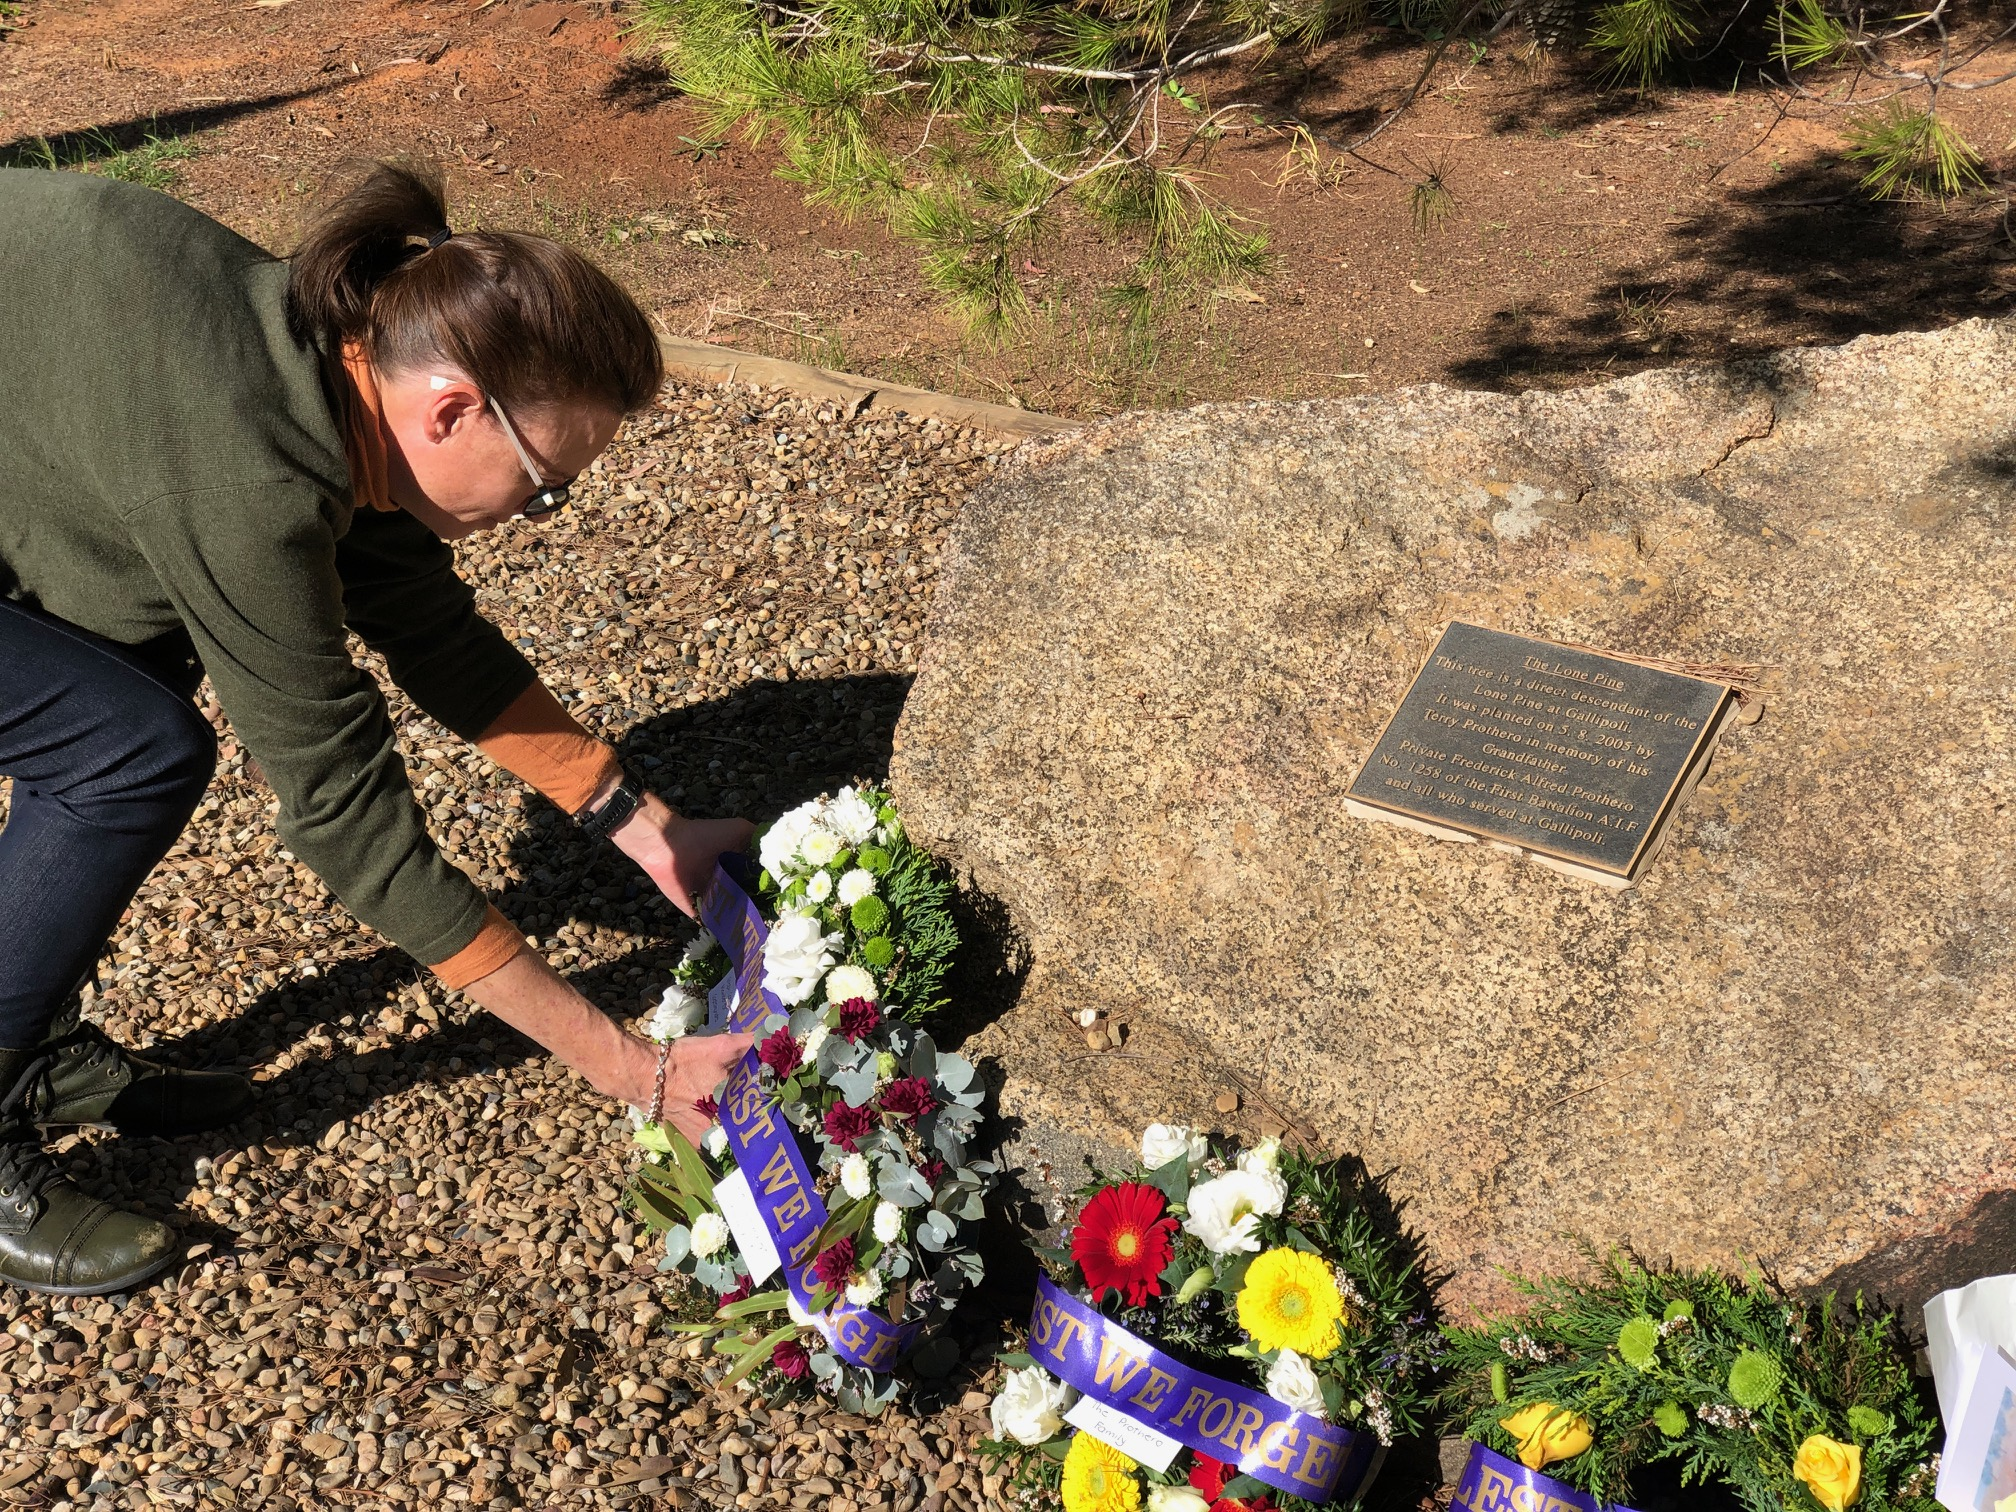 Steph Cooke places a wreath at a stone with a plaque identifying the Wombat Lone Pine.